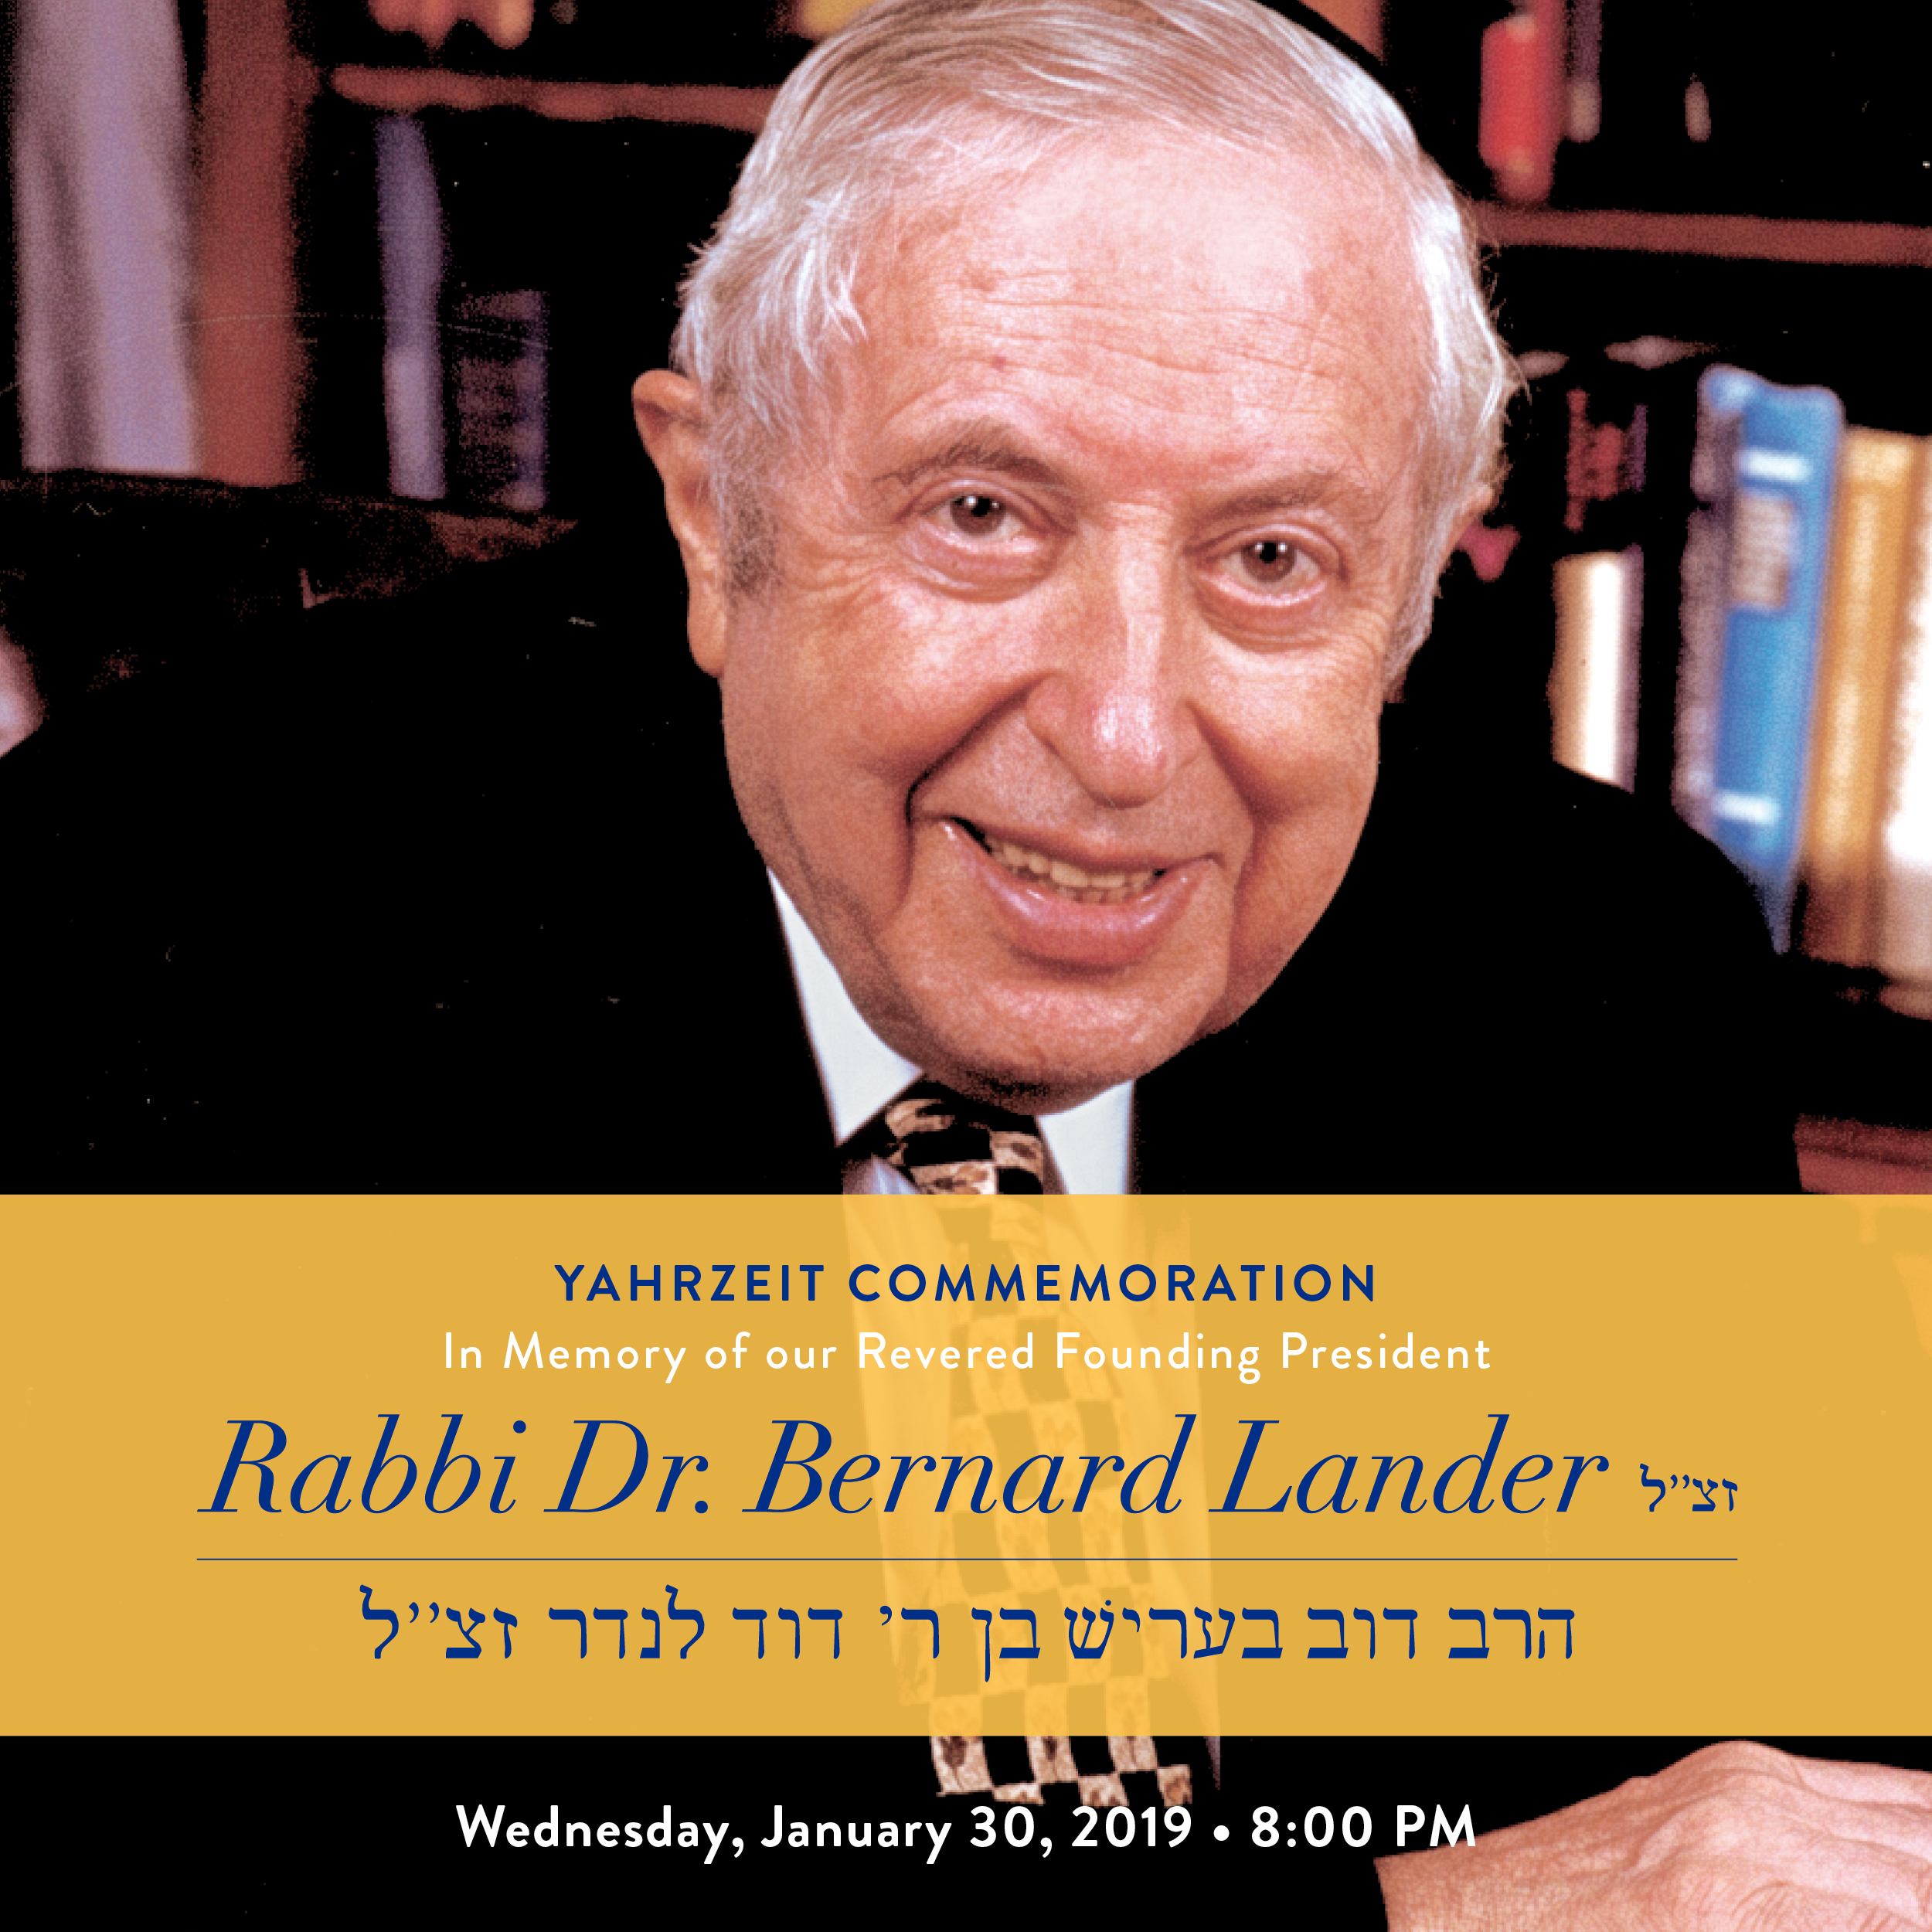 Rabbi Dr. Bernard Lander Yahrzeit Commemoration, January 30, 2019